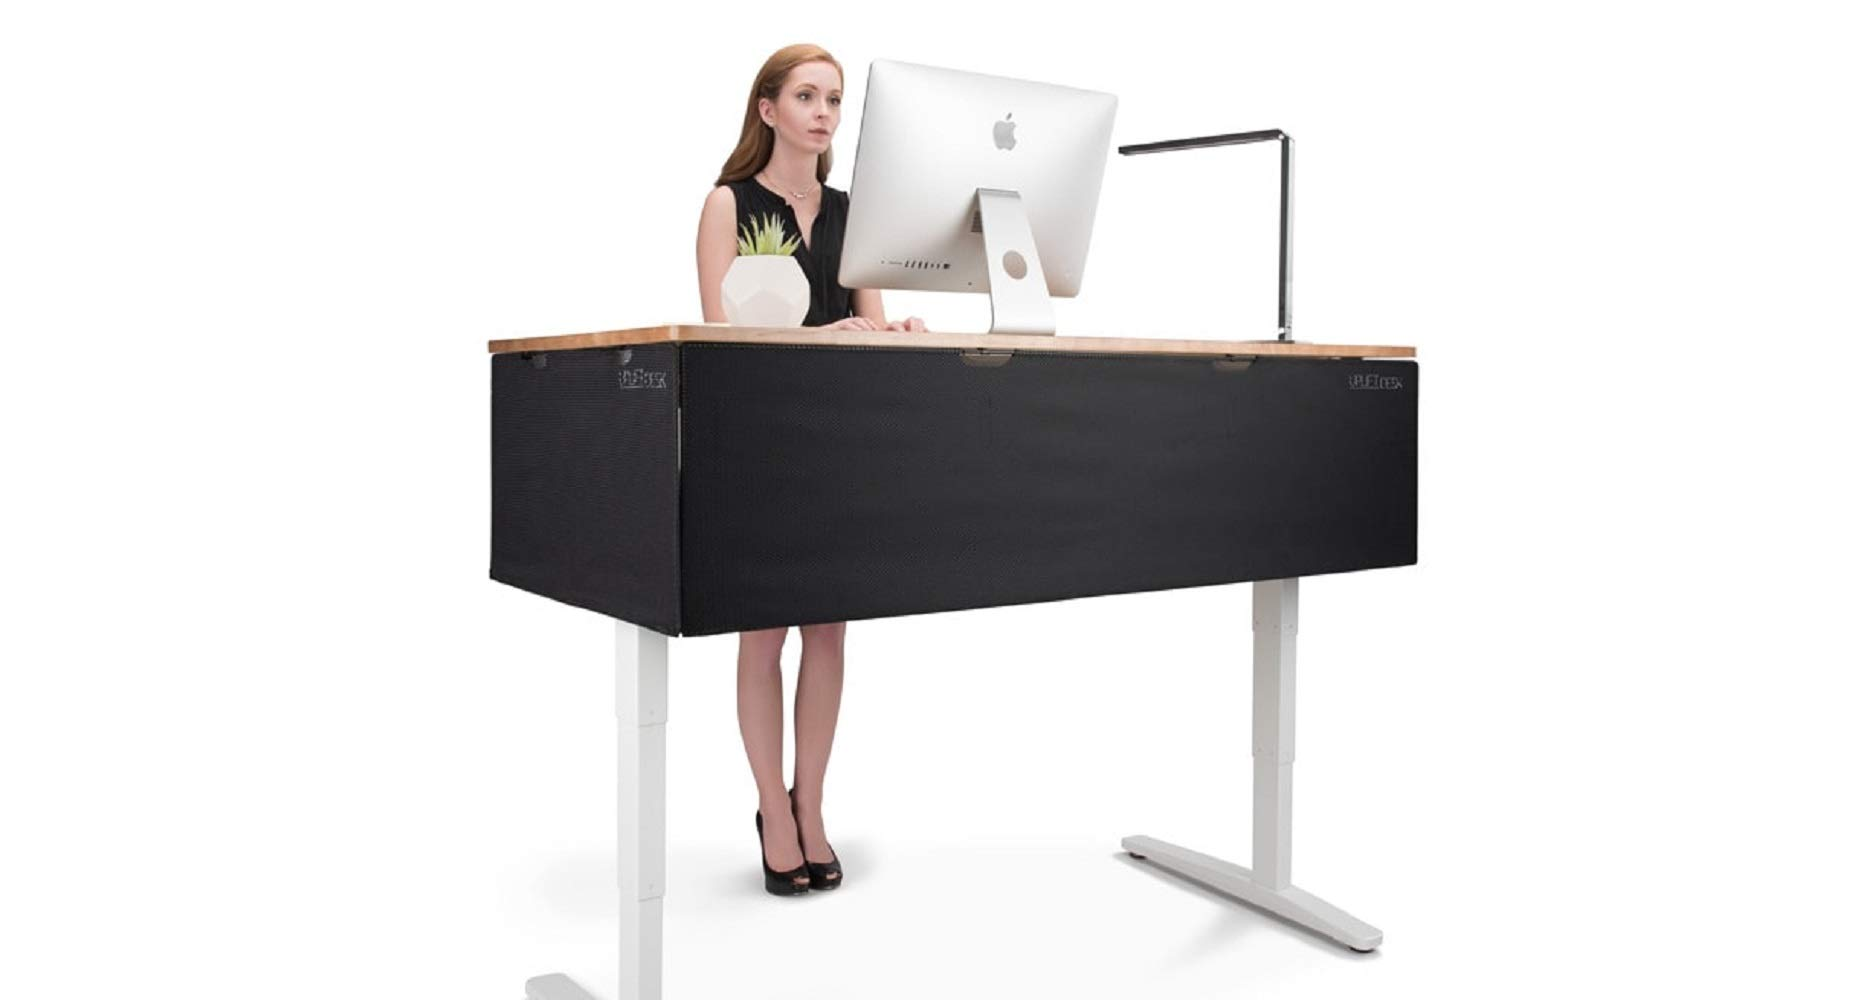 UPLIFT Desk - 48'' Modesty Panel with Wire Management (Black) by UPLIFT Desk